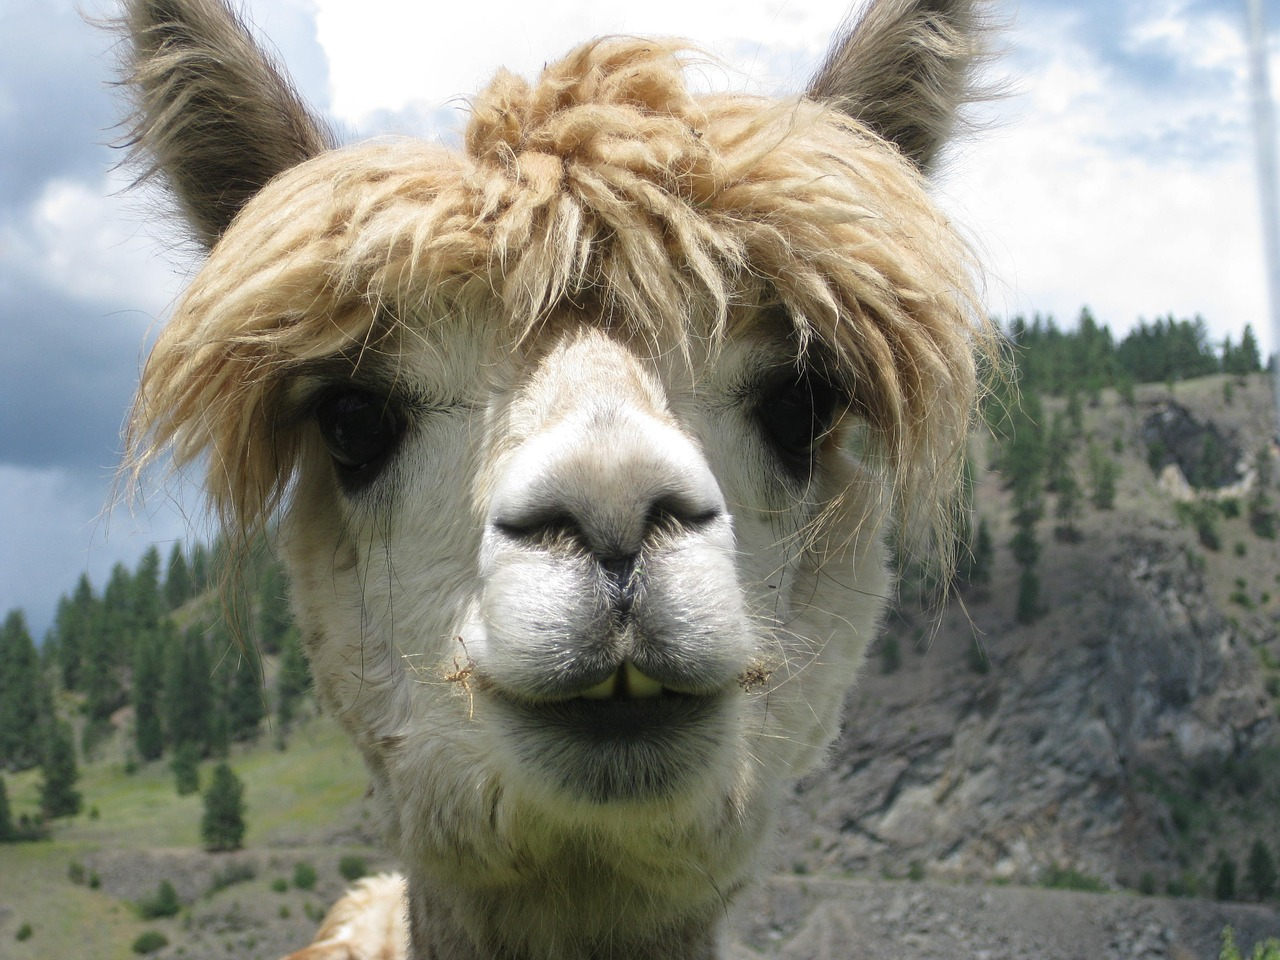 Do Llamas Really Spit